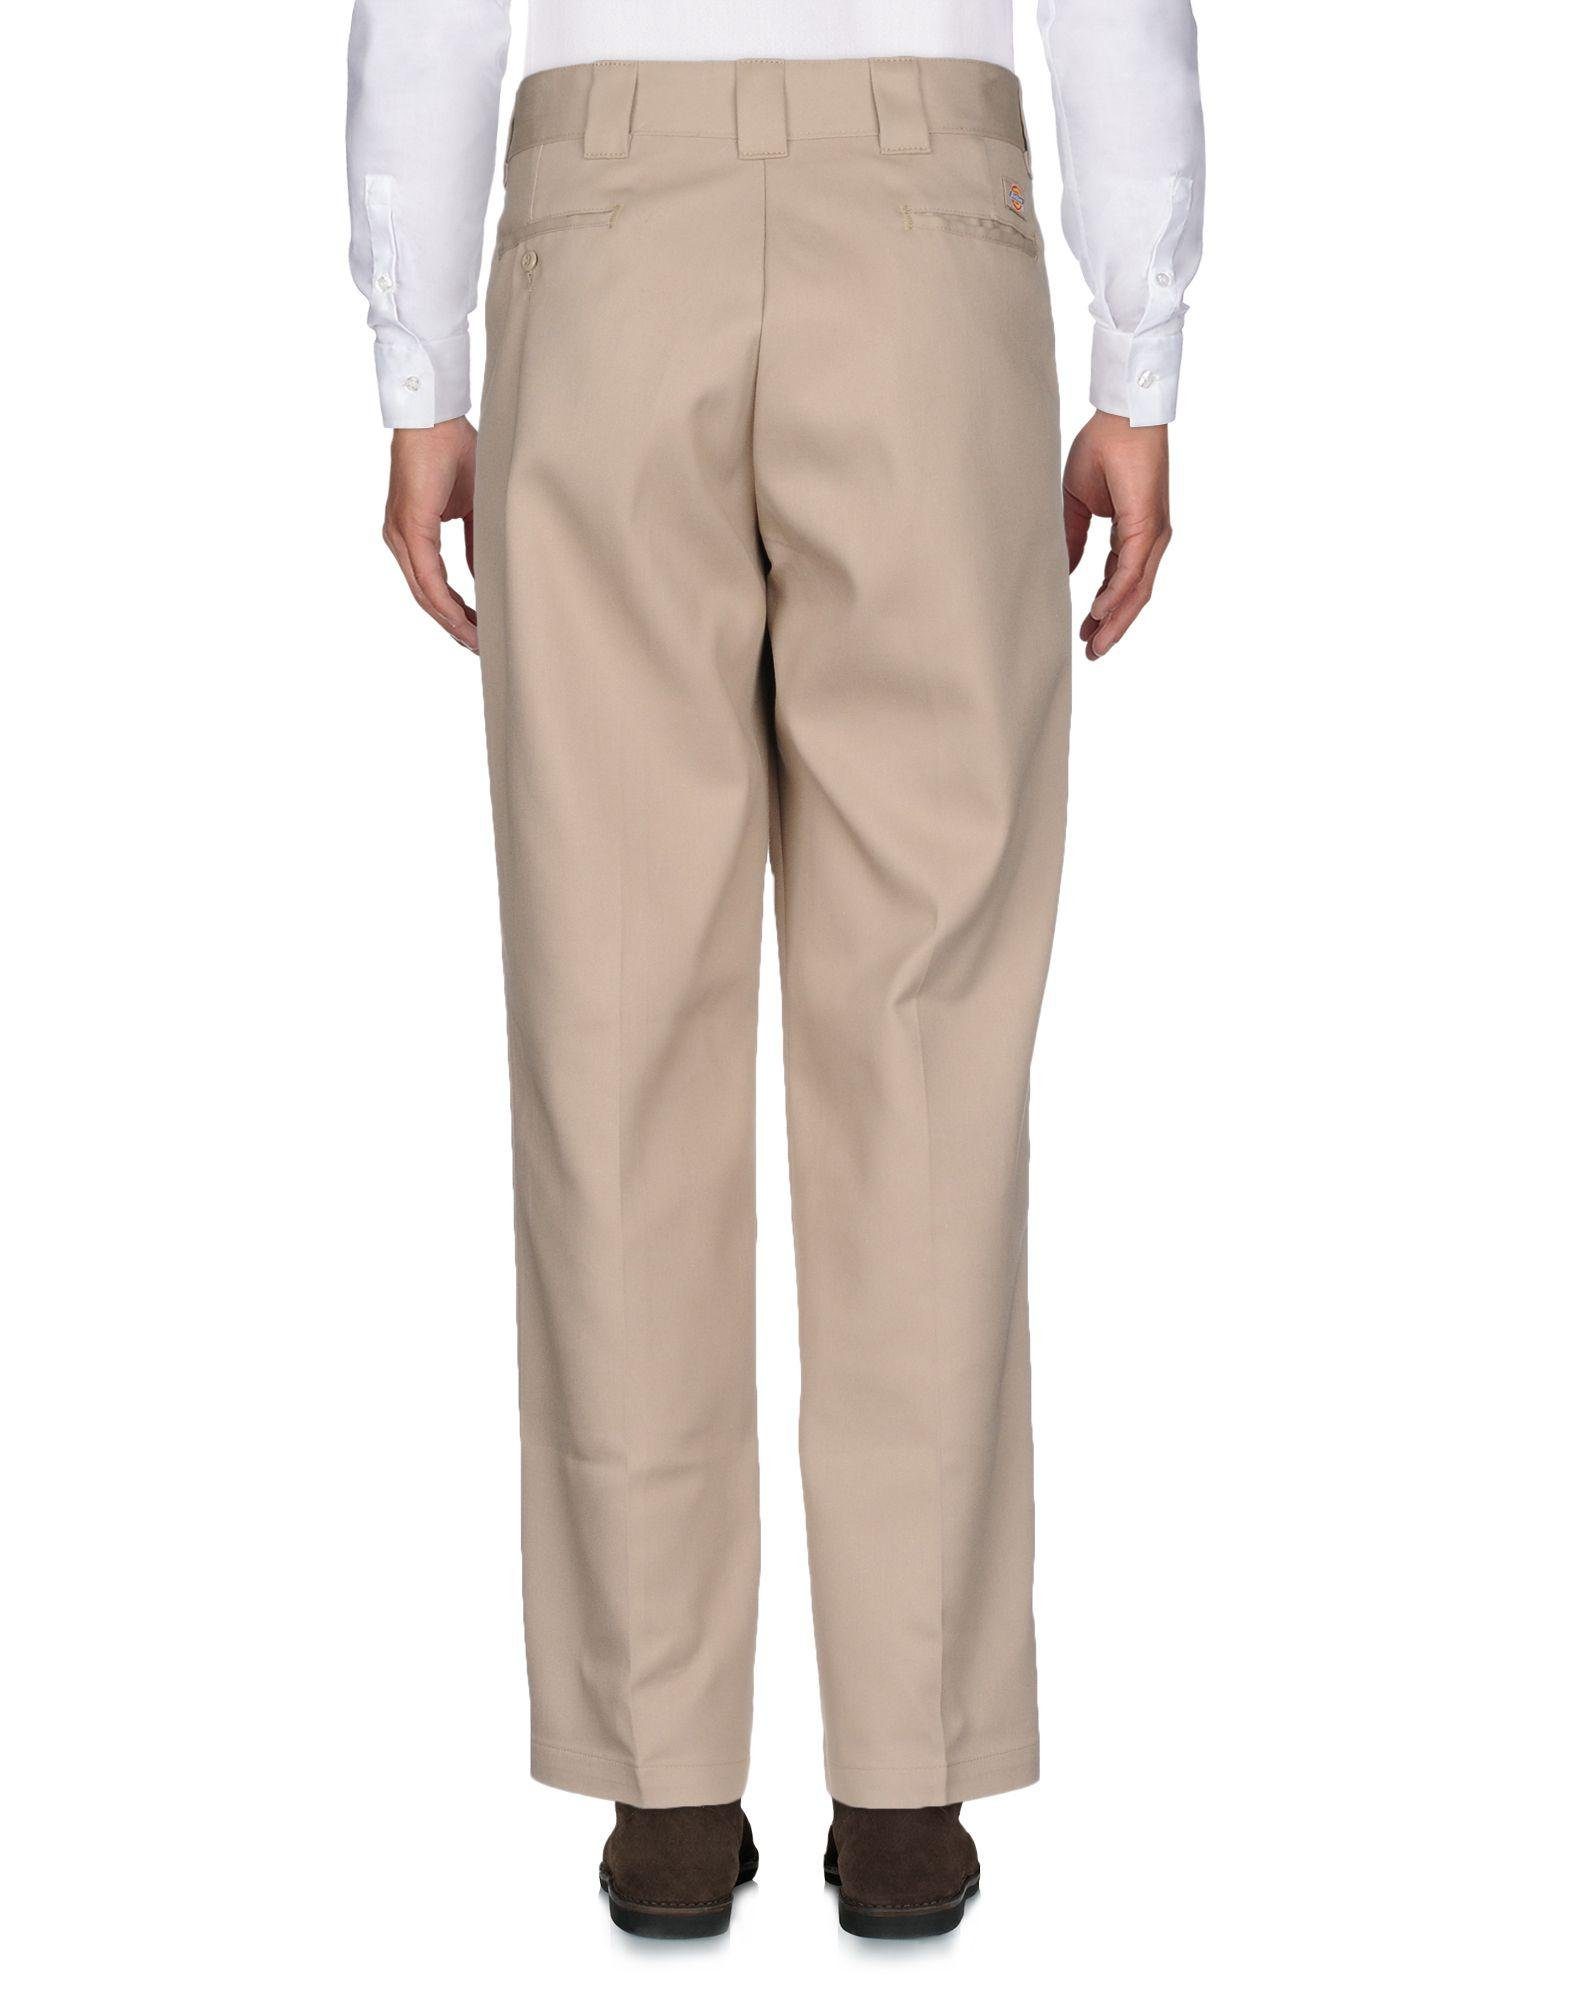 Dickies Synthetic Casual Trouser in Sand (Natural) for Men